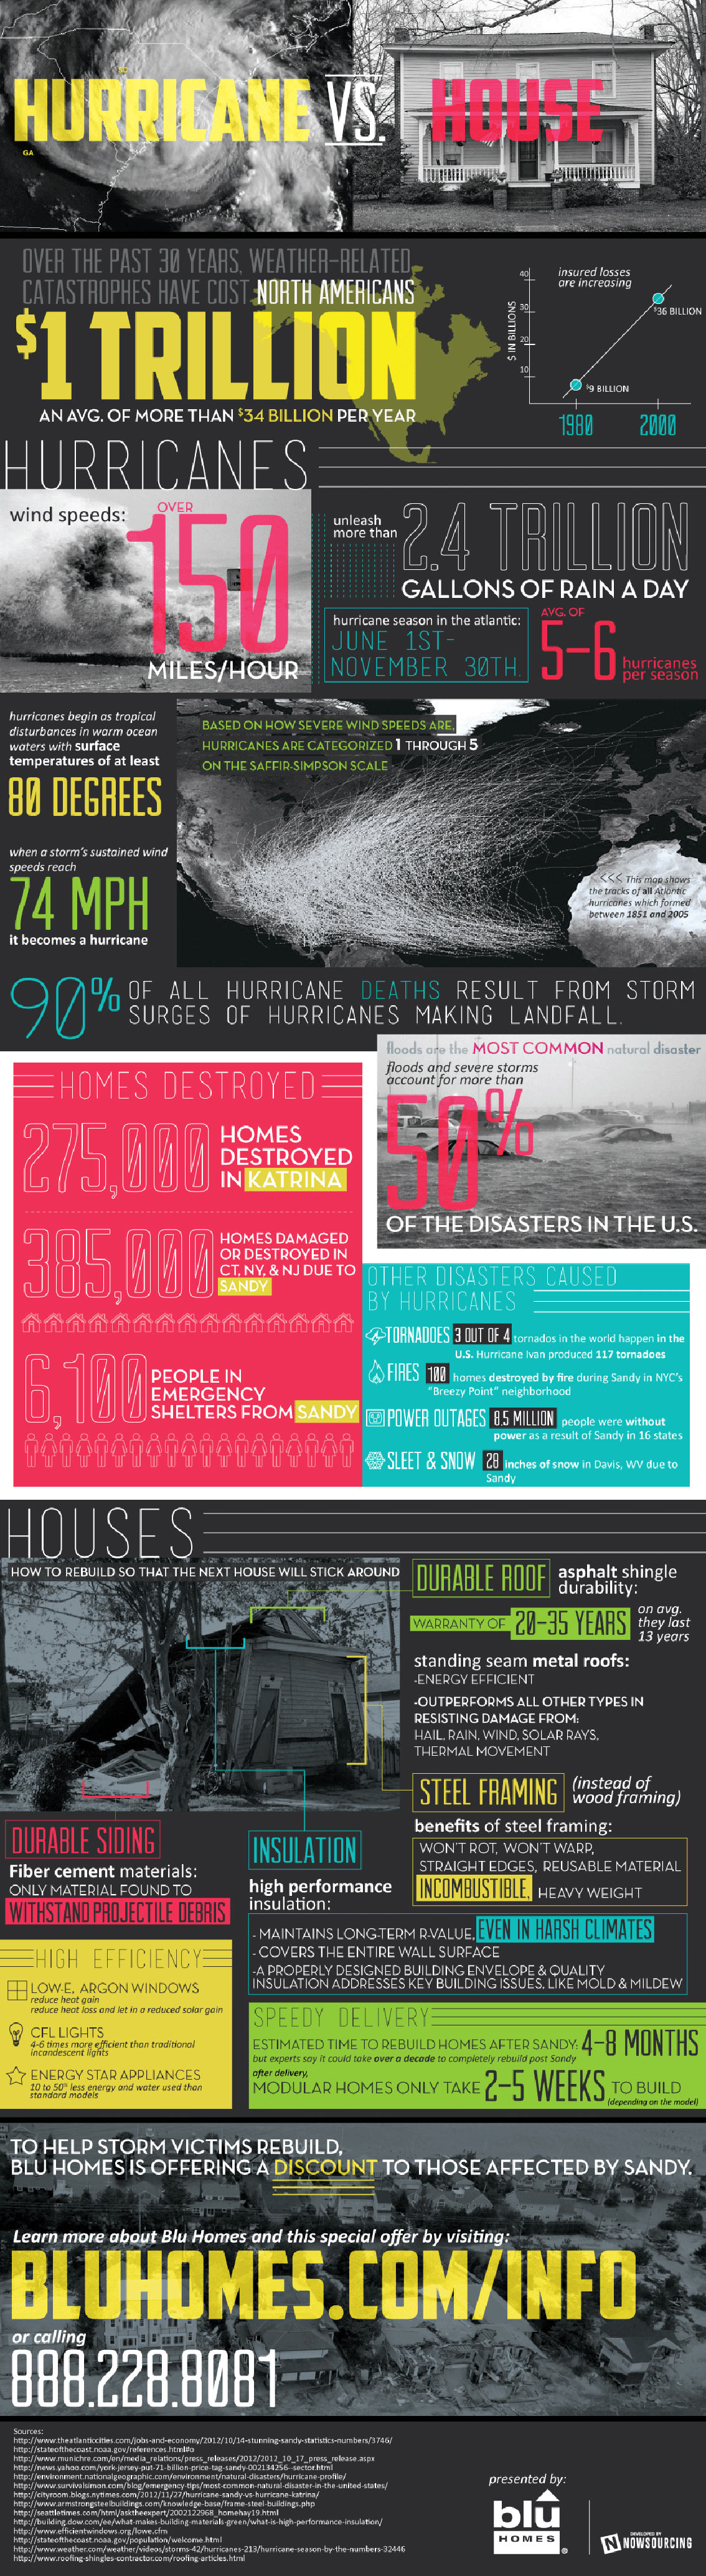 Damages Caused by Hurricanes to American Homes Infographic